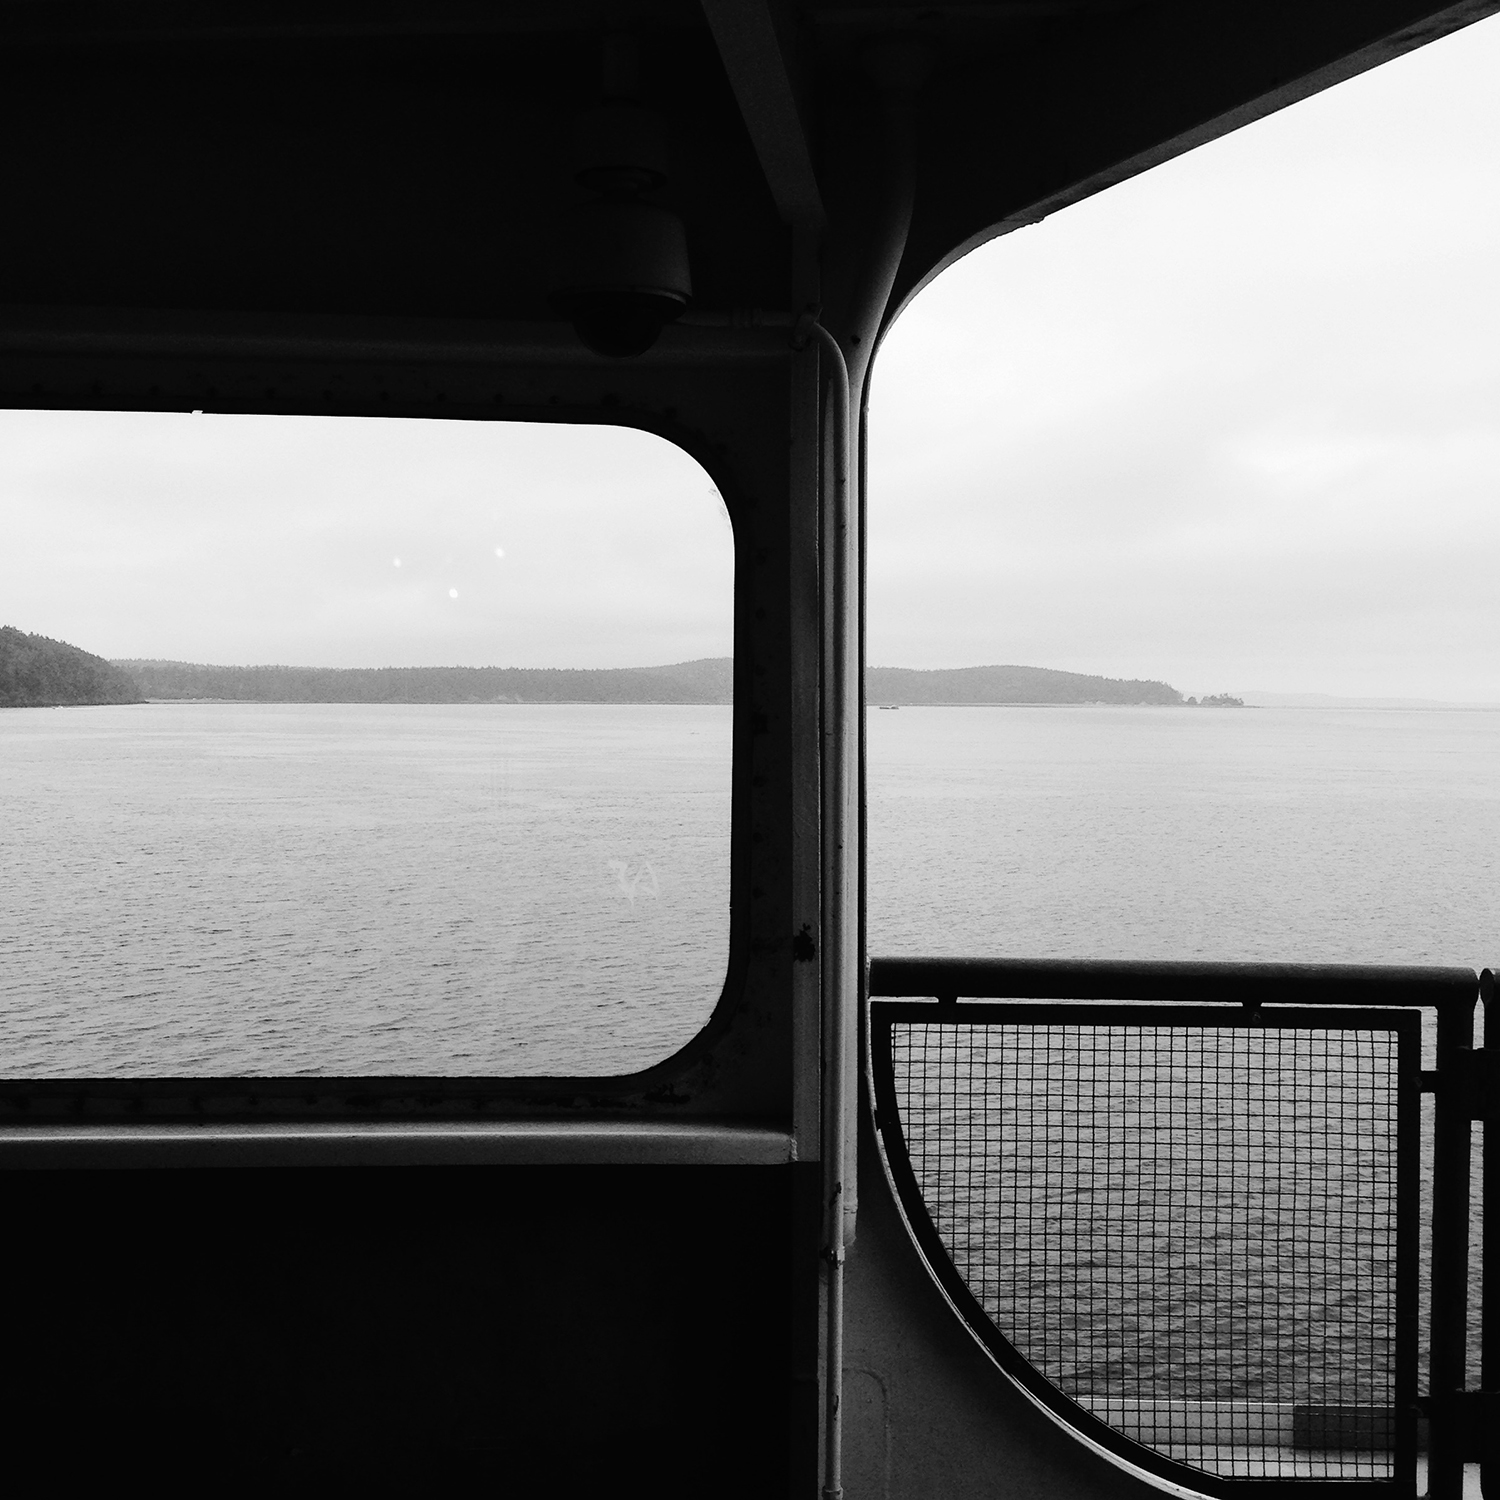 From the ferry in the morning (taken with my iPhone 5)